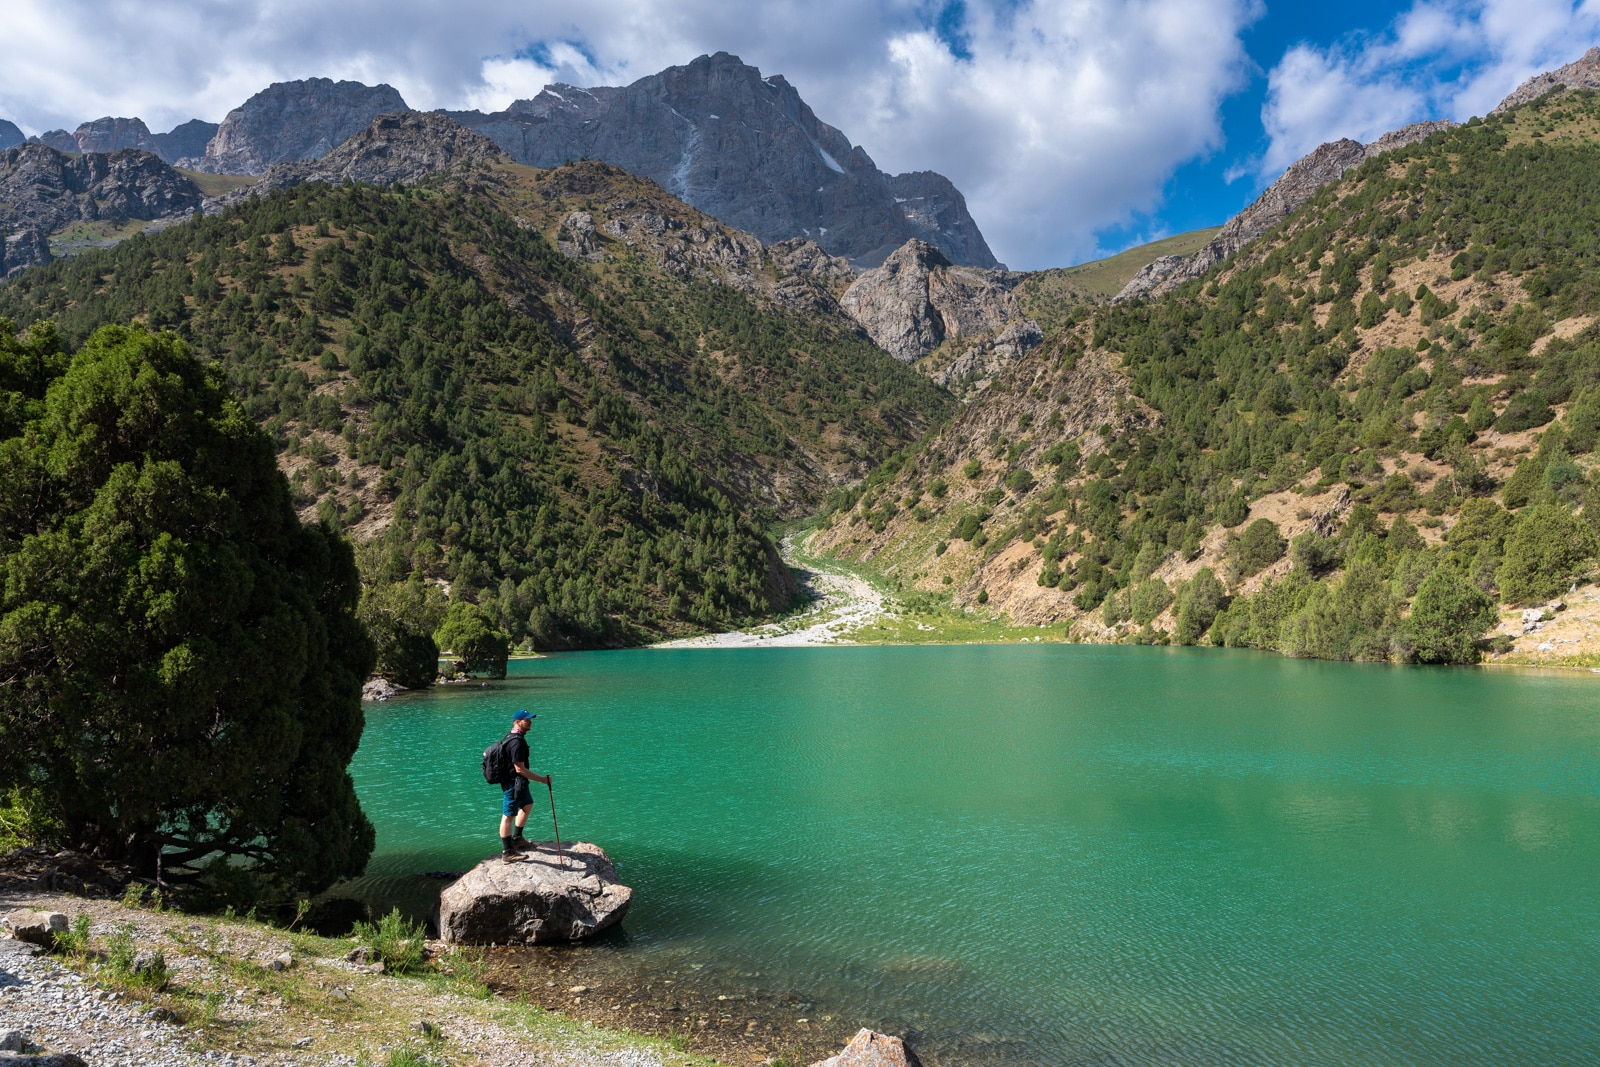 Trekker by a lake in Tajikistan's Fann Mountains